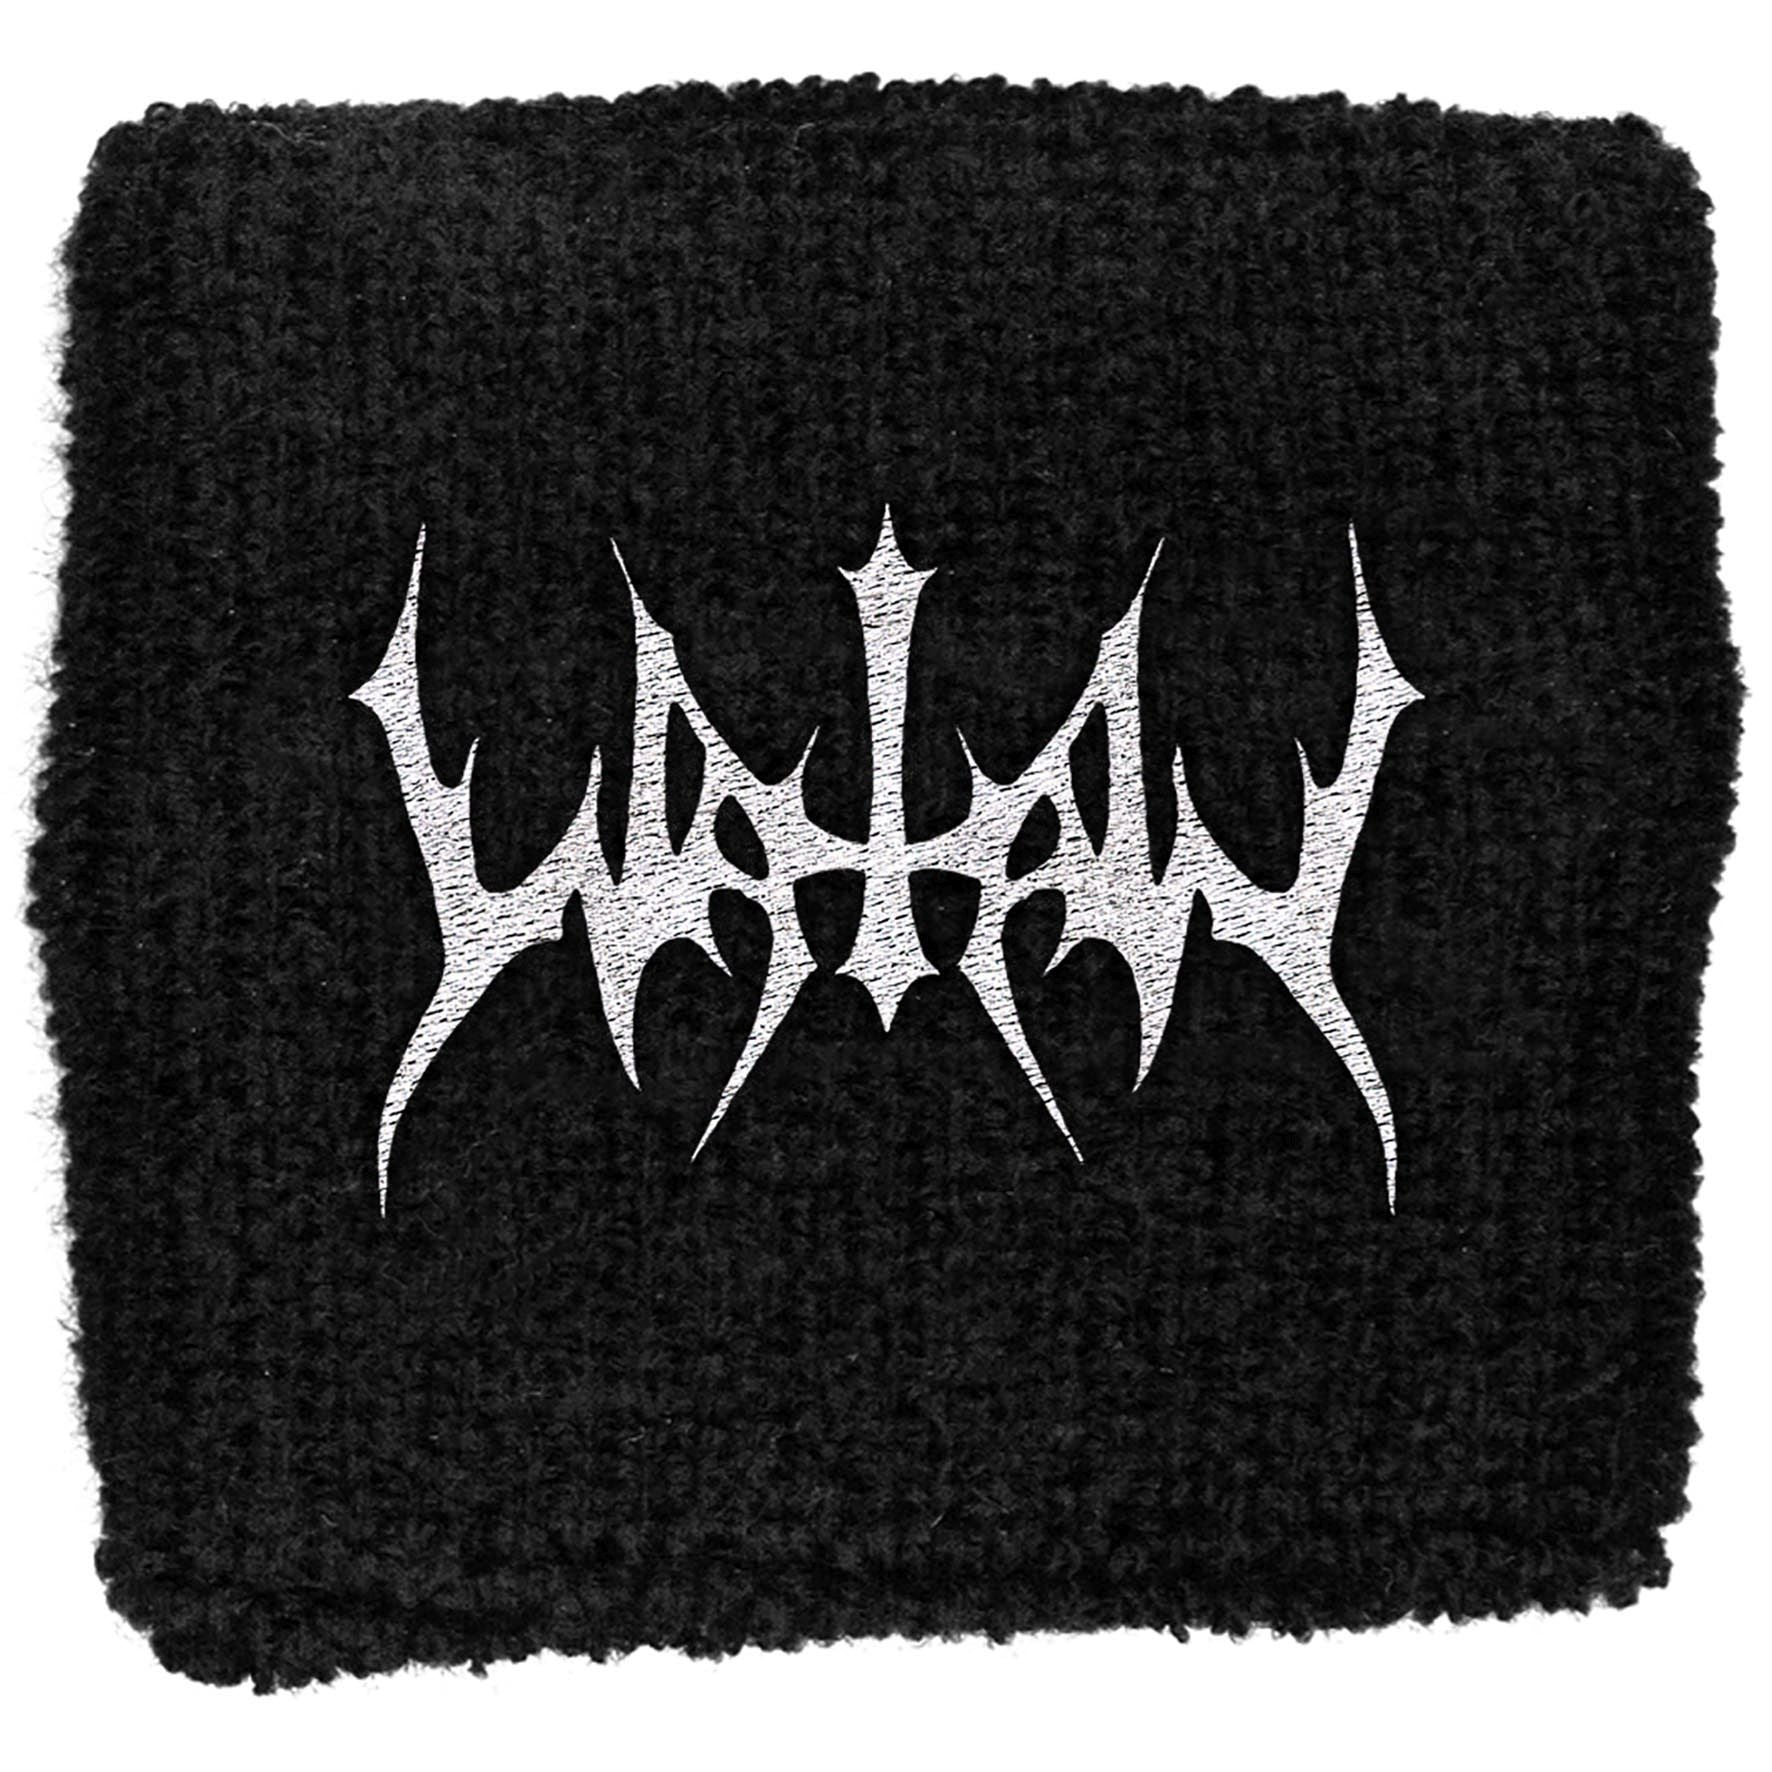 Watain - Sweat Towelling Embroided Wristband (Logo)